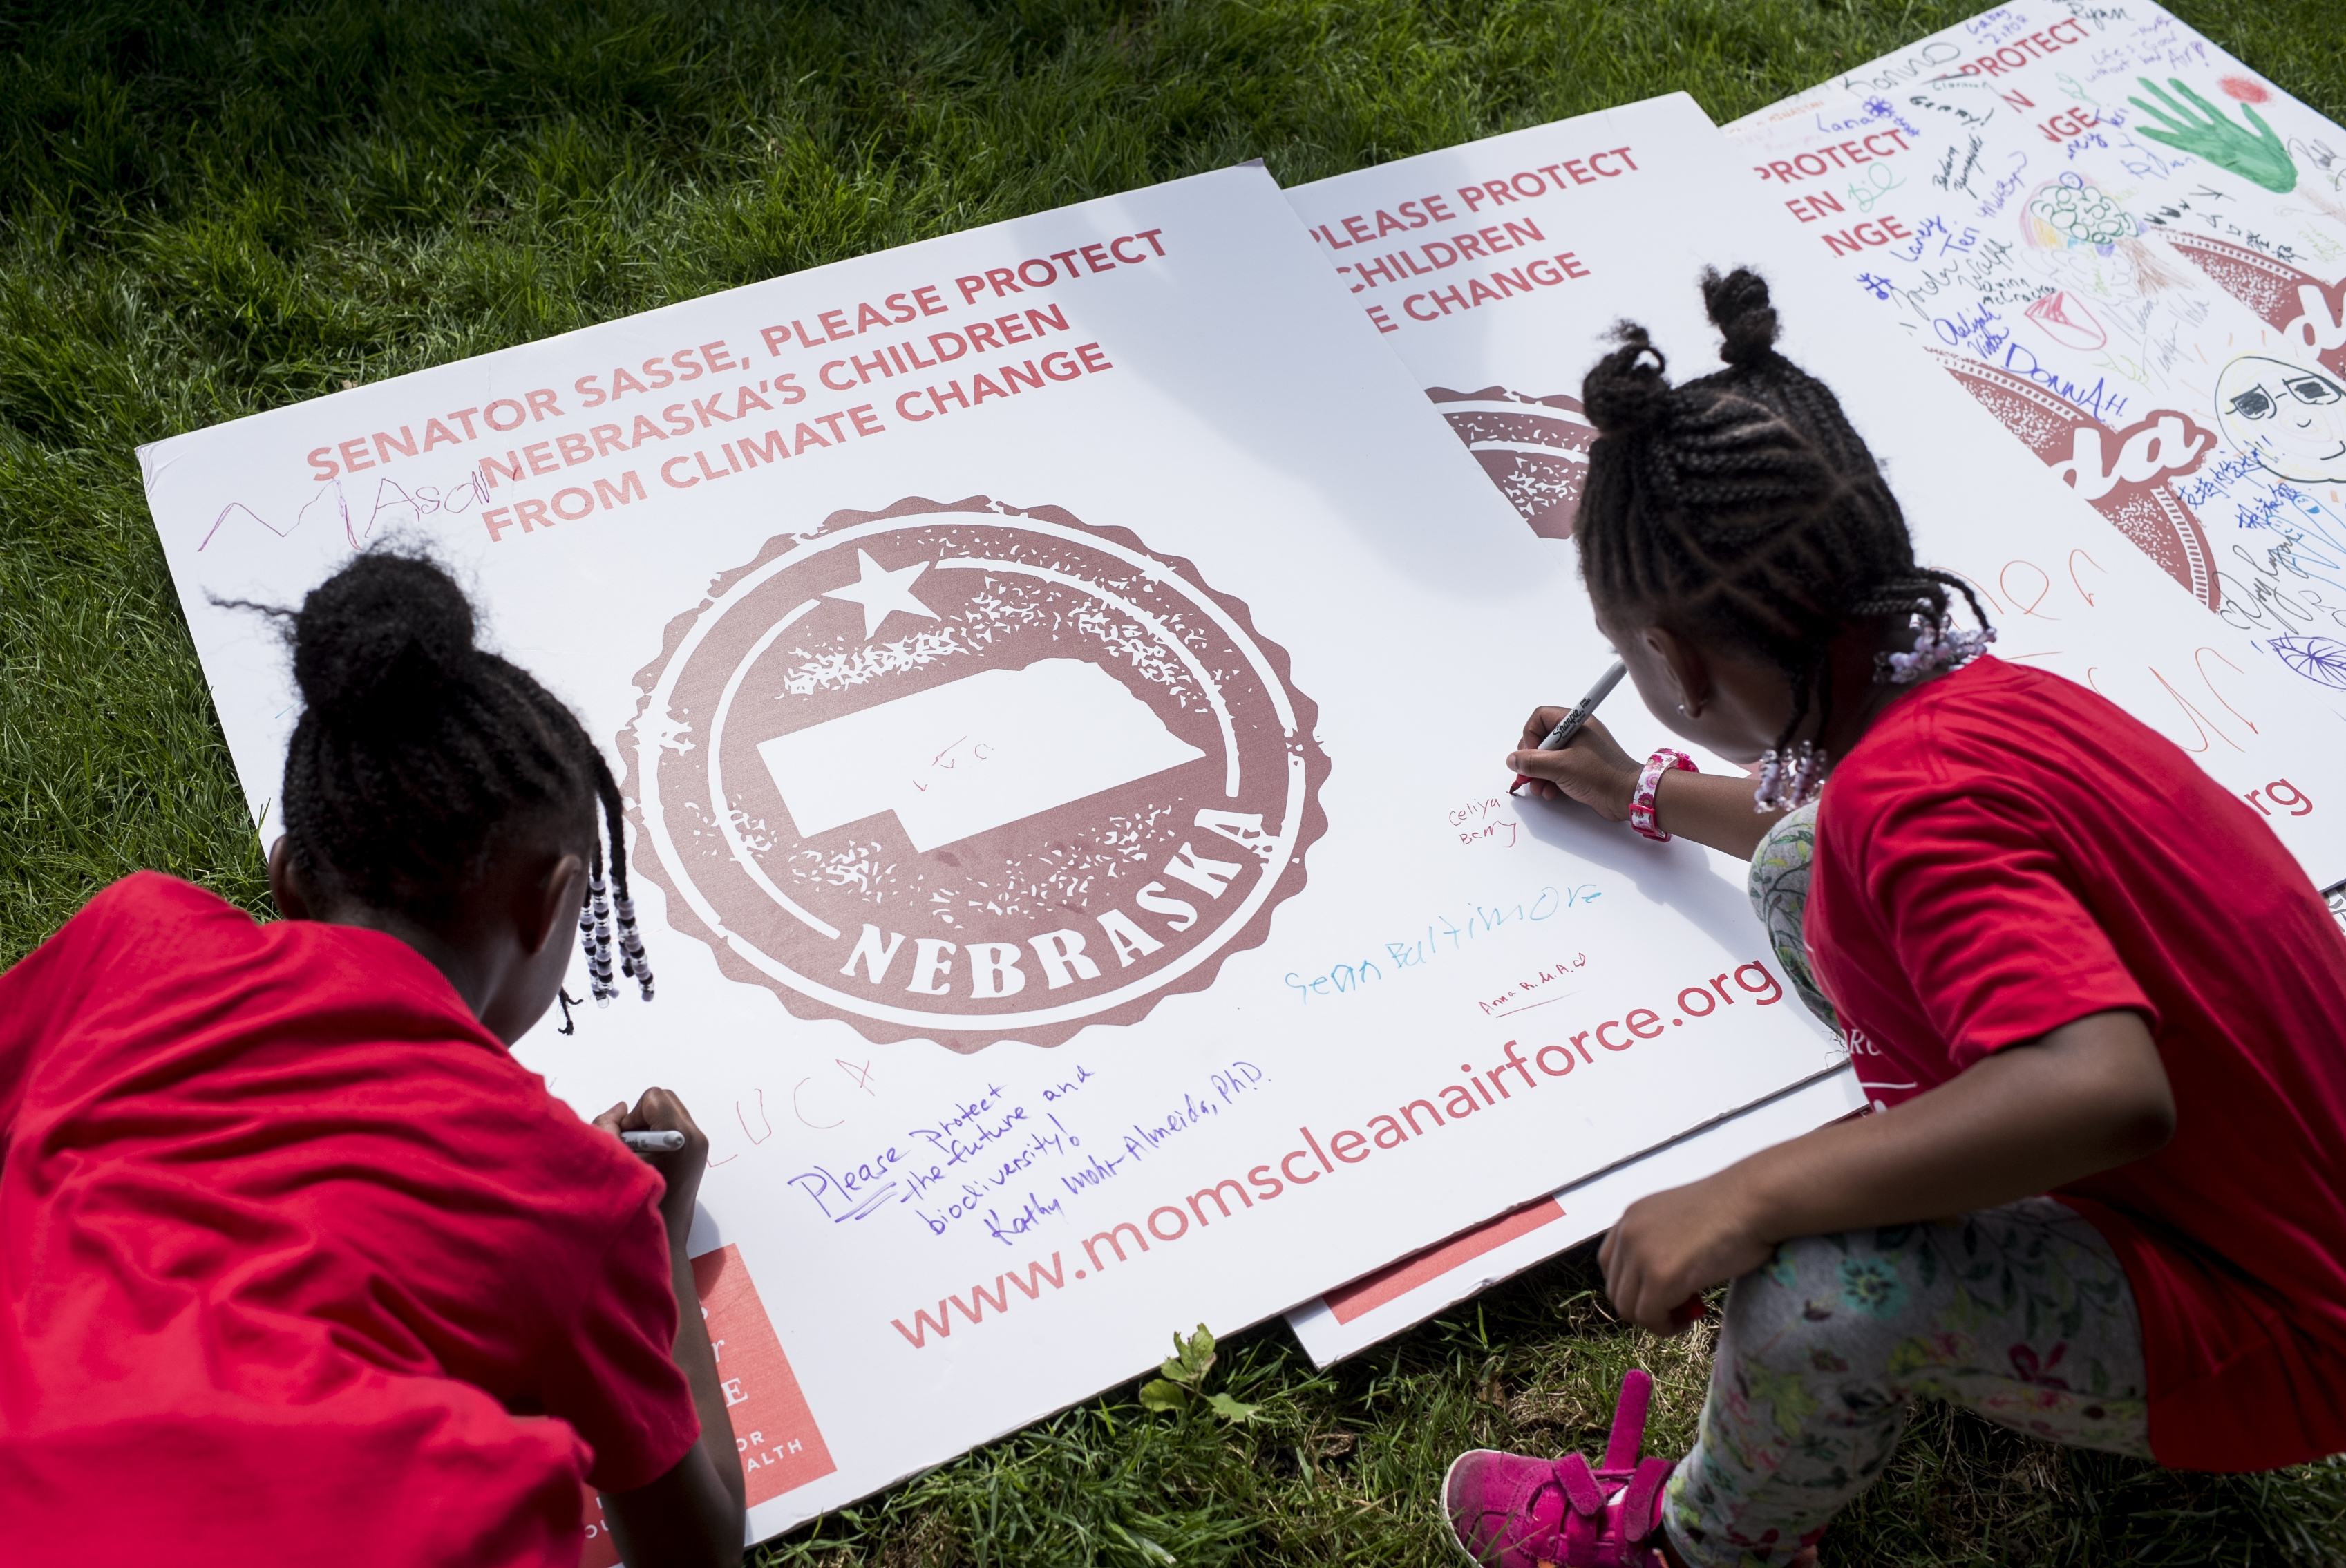 Kids write their names and decorate signs calling on senators to act on climate change legislation during the Moms Clean Air Force